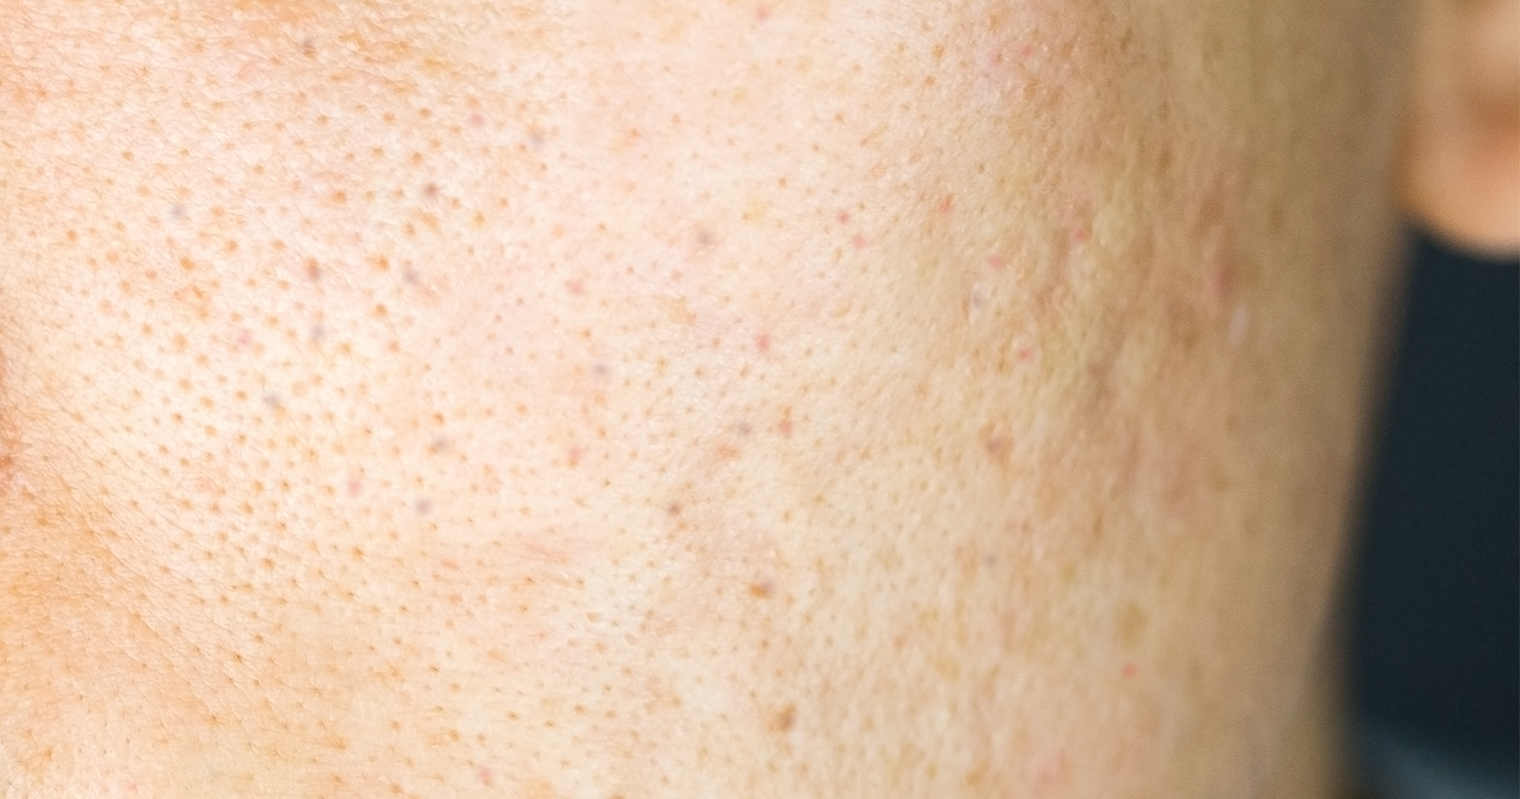 uneven skin texture is a characteristic of bad skin